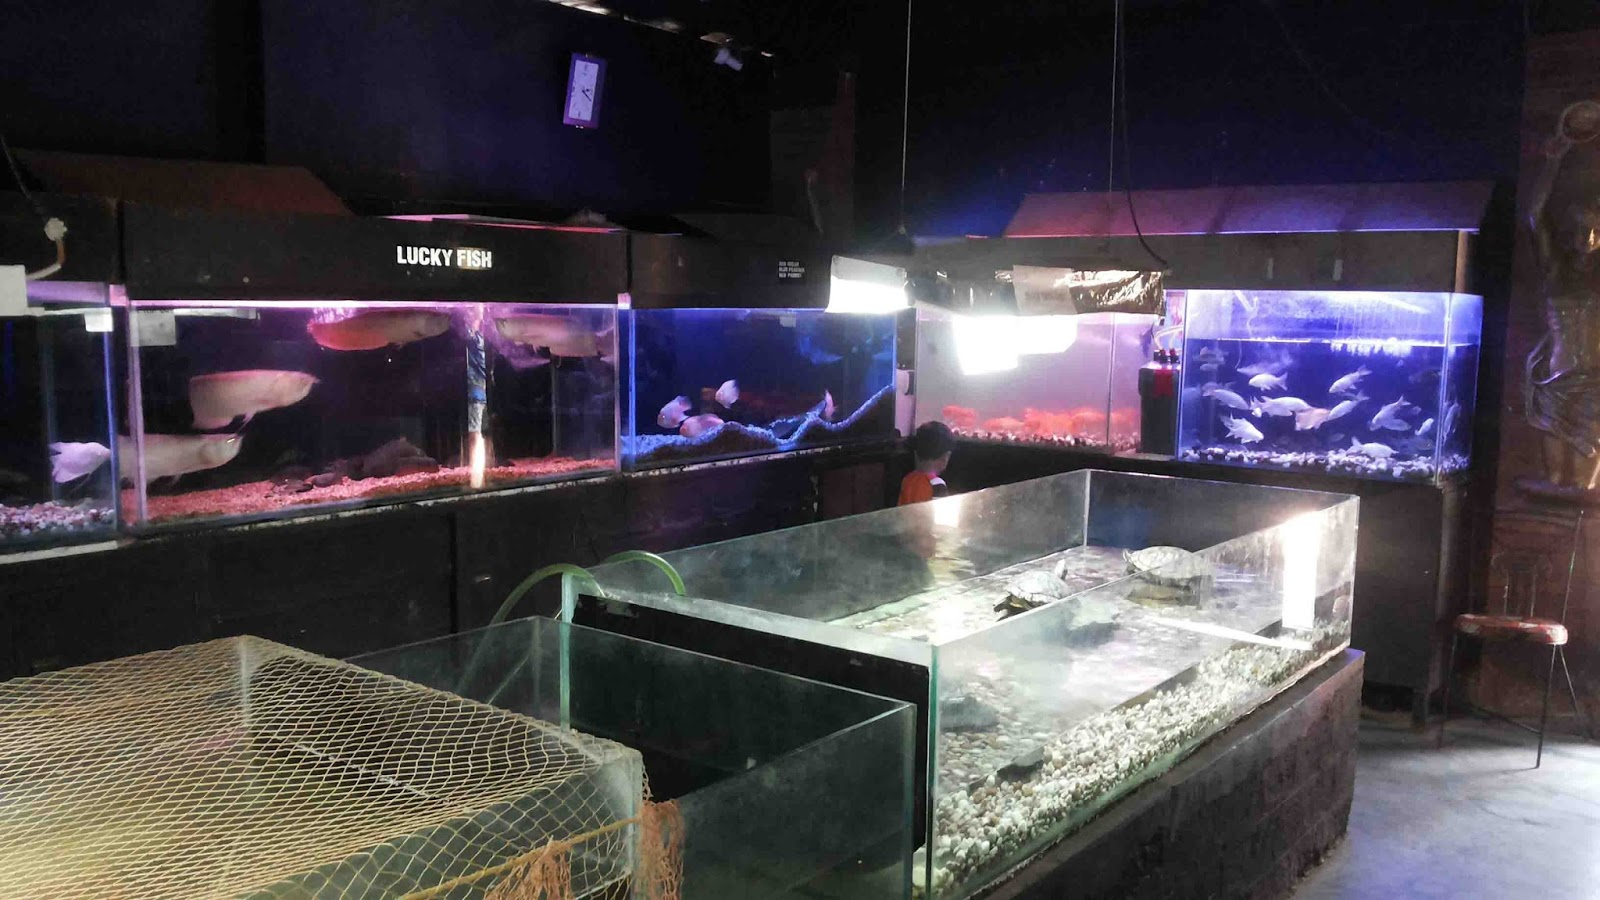 Fish aquarium verna goa - Inside Arrangement Of Aquarium